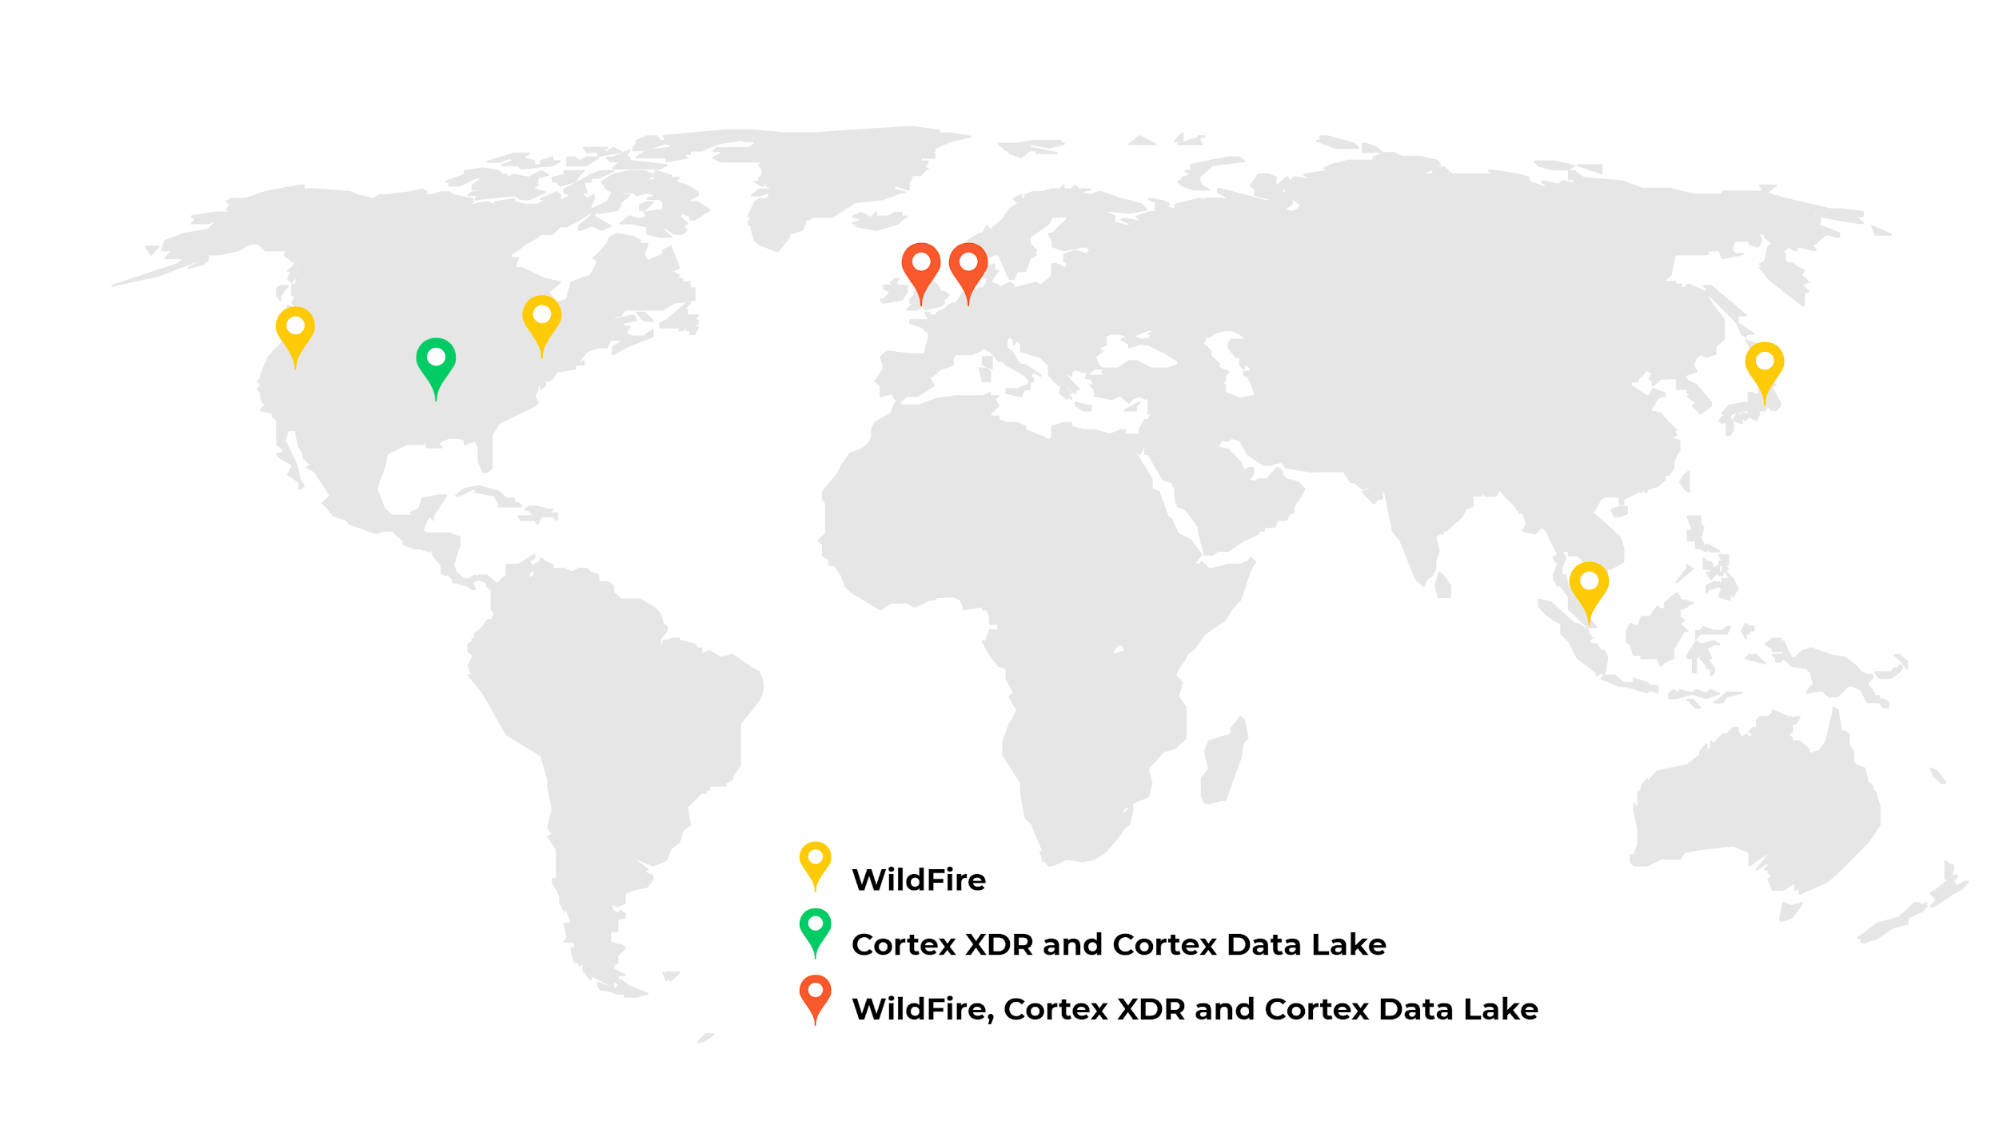 A new cloud hosting location in the UK augments locations in the United States, European Union and Asia. The map shows the locations of cloud hosting for WildFire, Cortex XDR and Cortex Data Lake.